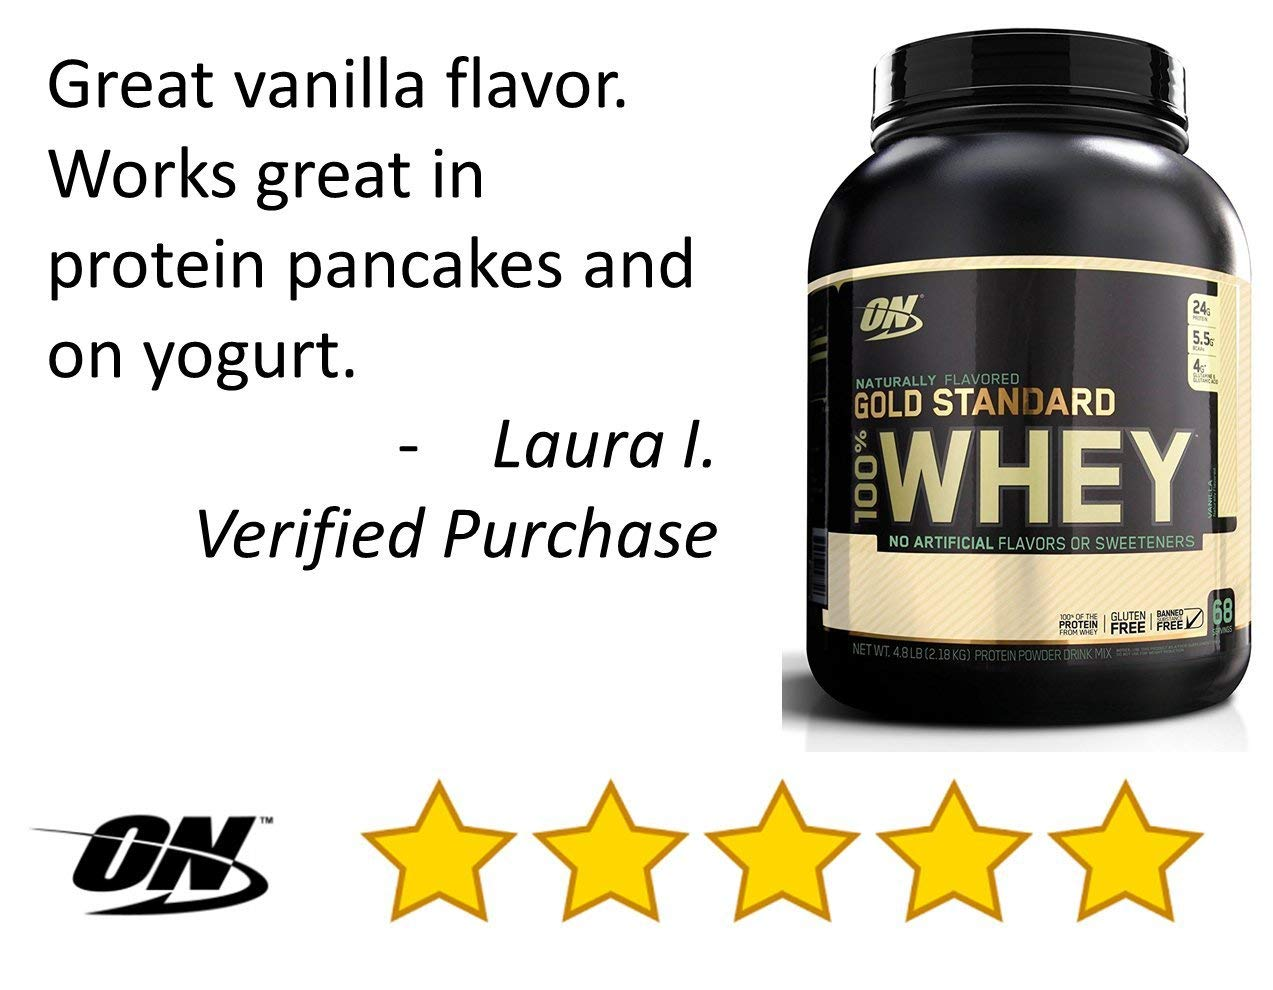 OPTIMUM NUTRITION GOLD STANDARD 100% Whey Protein Powder, Naturally Flavored, 4.8 Pound by Optimum Nutrition (Image #8)